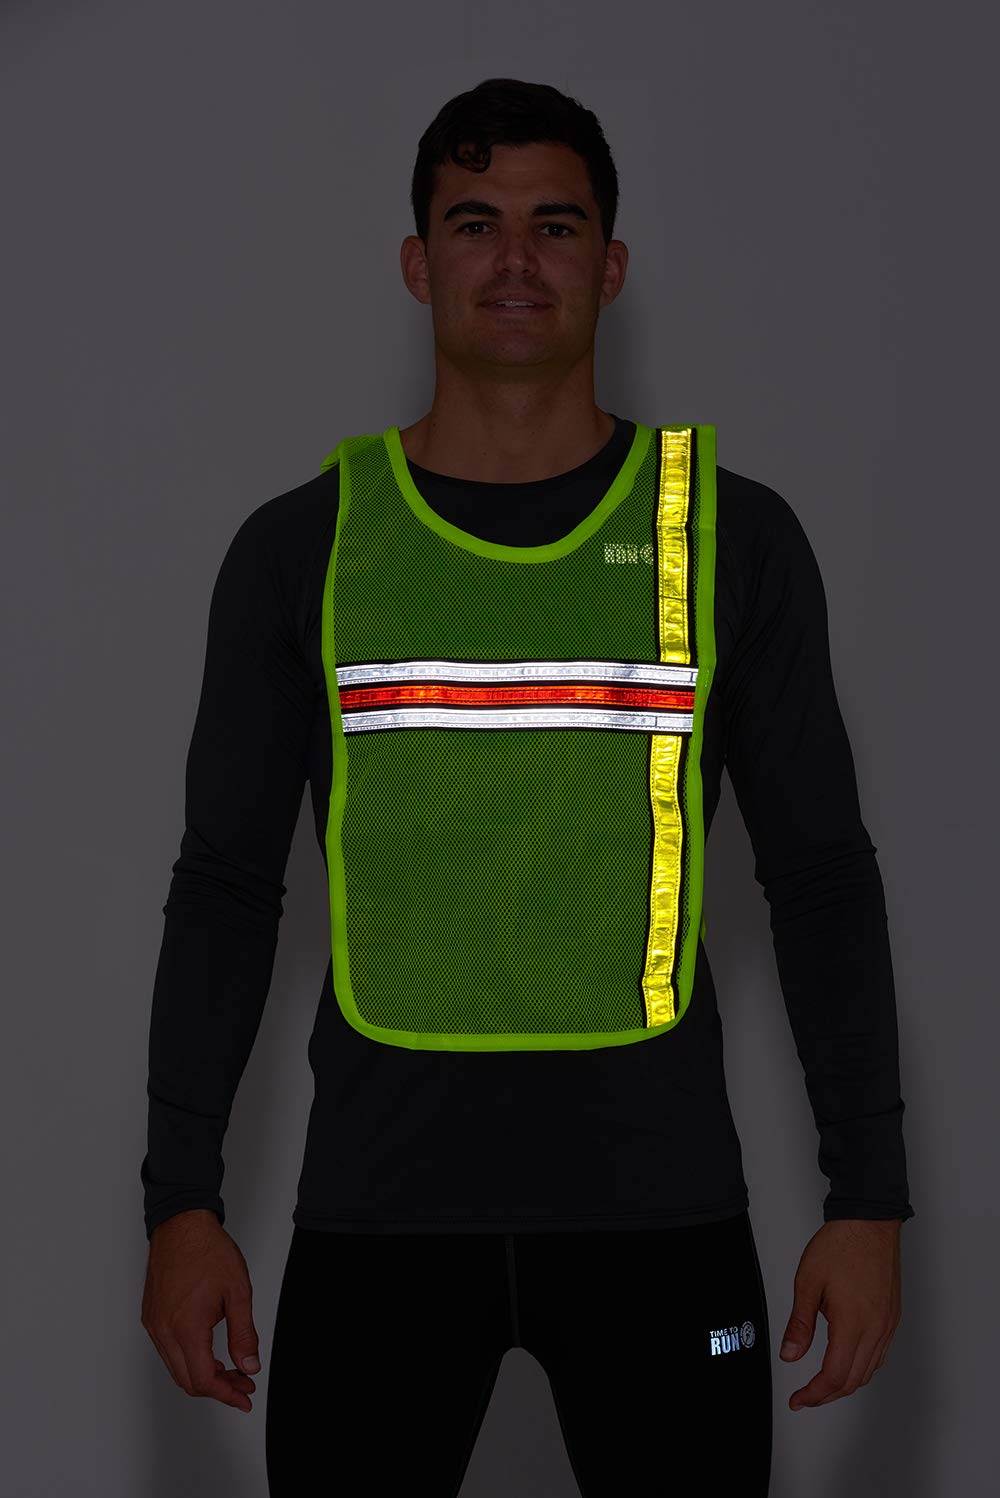 Objective Black Safety Vest High Visibility Breathable Mesh Pvc Tape Outdoor Clothes With Traditional Methods Security & Protection Safety Clothing